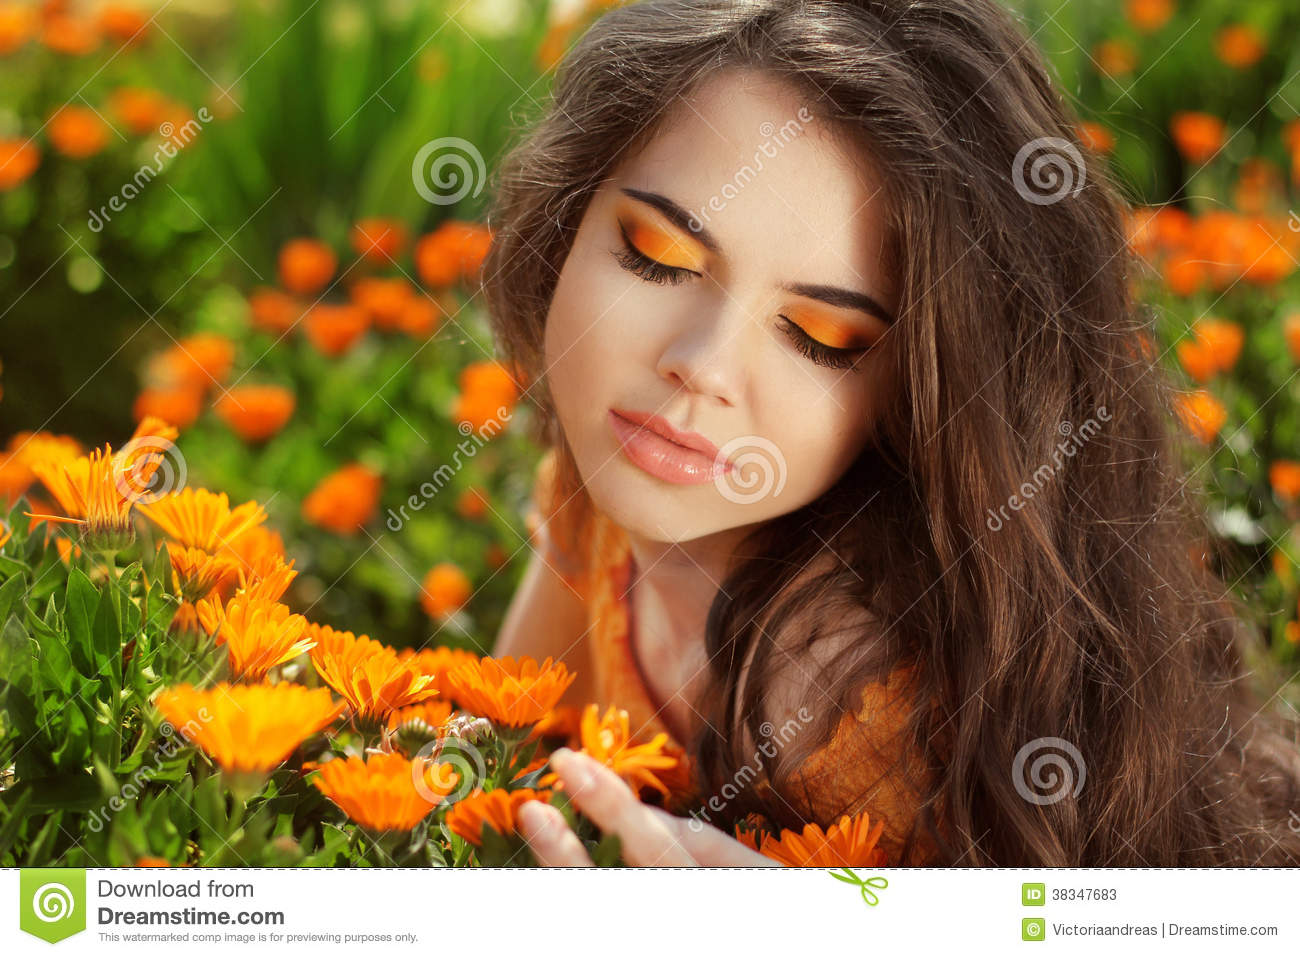 Beauty Romantic Girl Outdoors. Eye makeup. Beautiful Teenage Mod